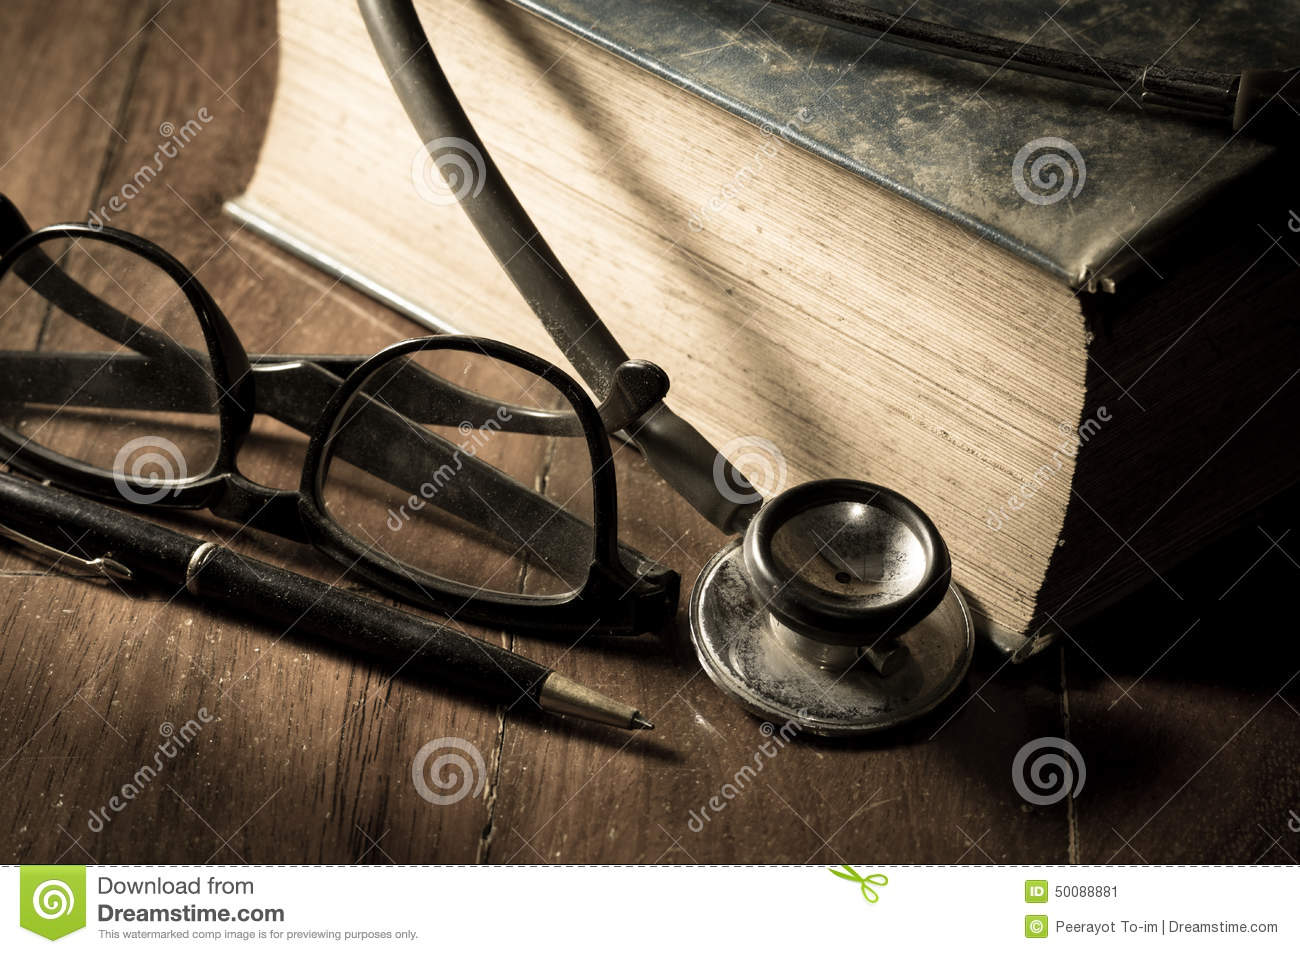 Stethoscope with eyeglasses,pen and book.